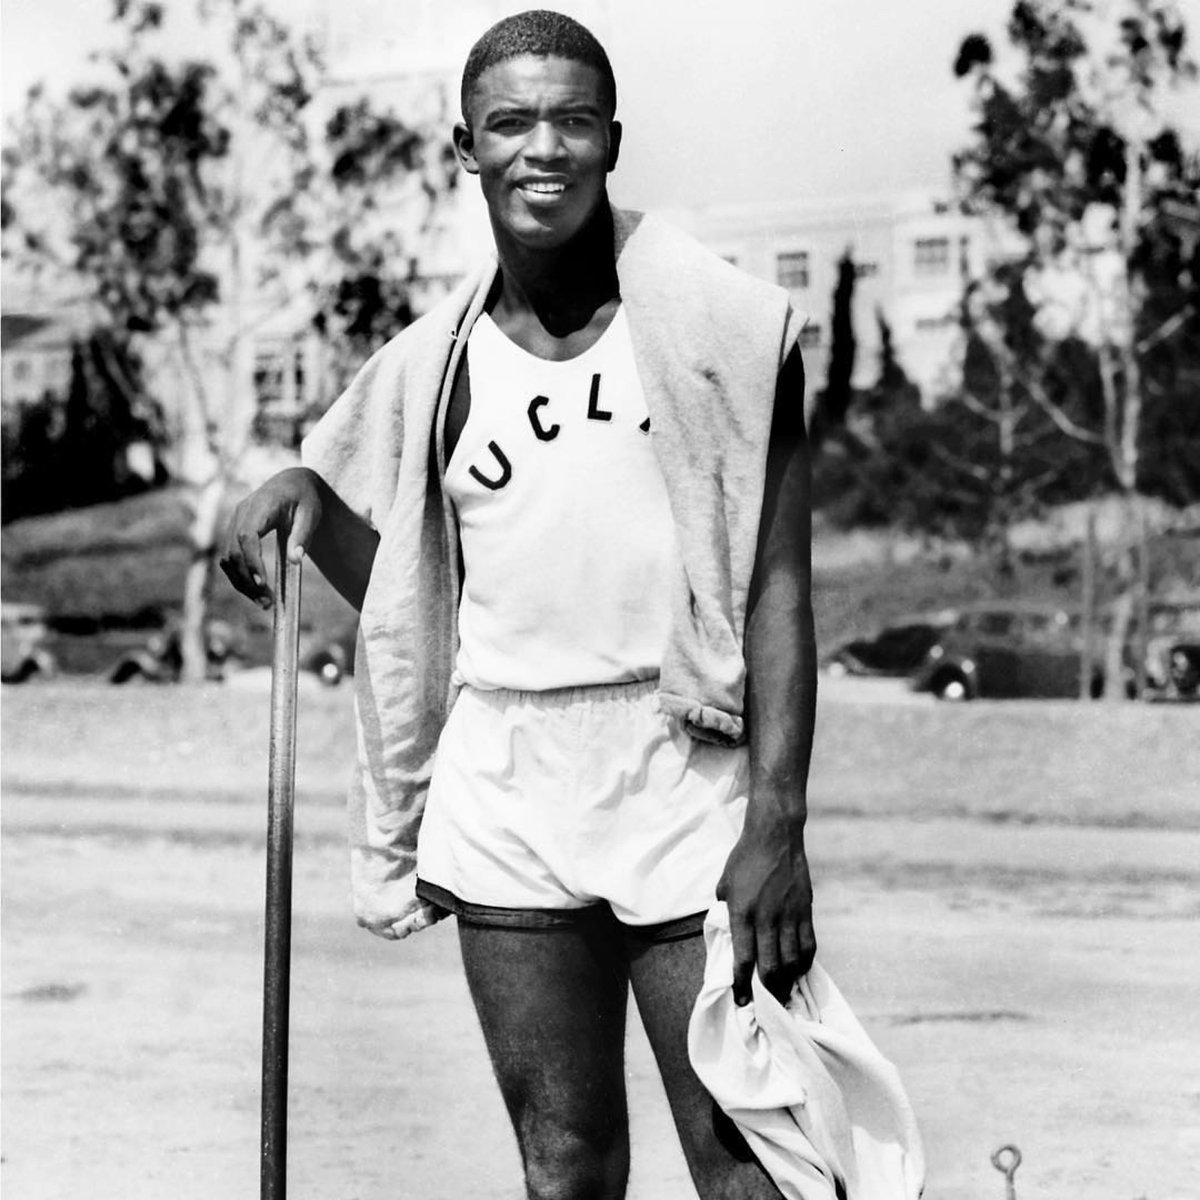 Jackie Robinson won the 1940 NCAA long jump title and continued to jump over barriers to change sports and the country forever. Today we celebrate #JackieRobinsonDay #Jackie42<br>http://pic.twitter.com/HbWnjrbNXD